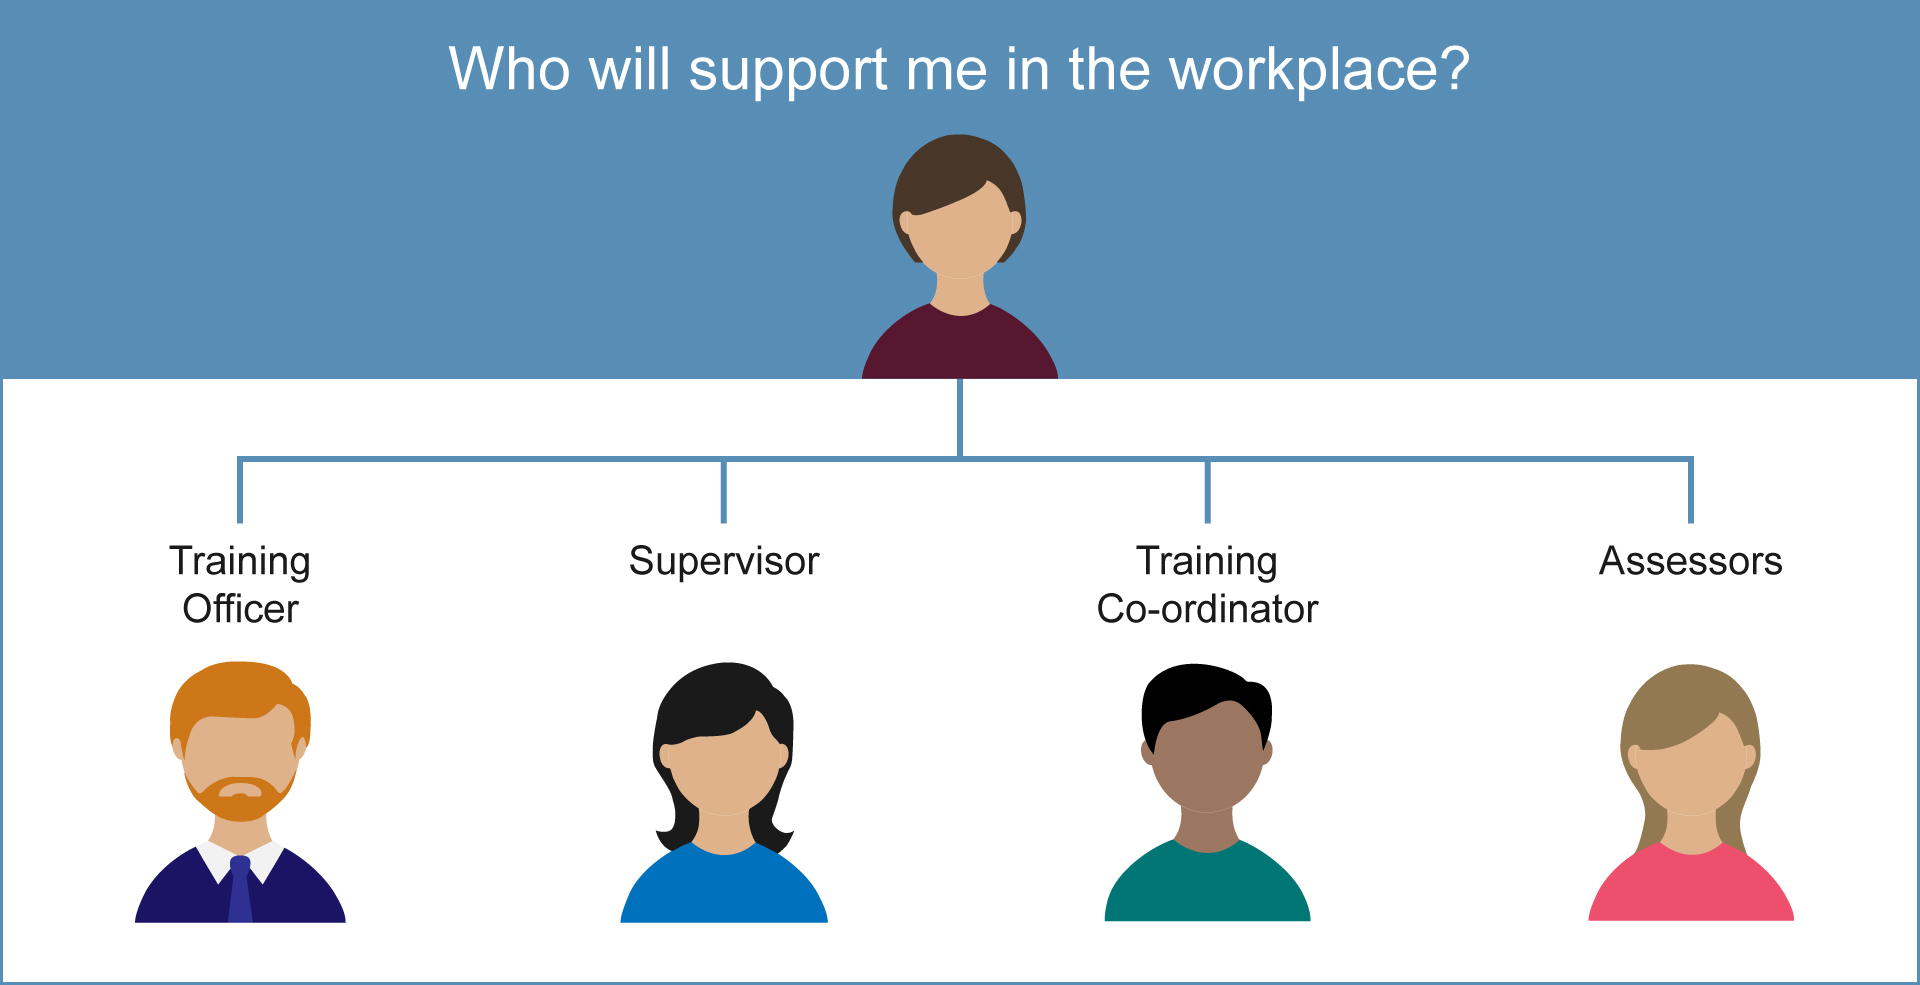 Graphic showing who will support an STP trainee in the workplace